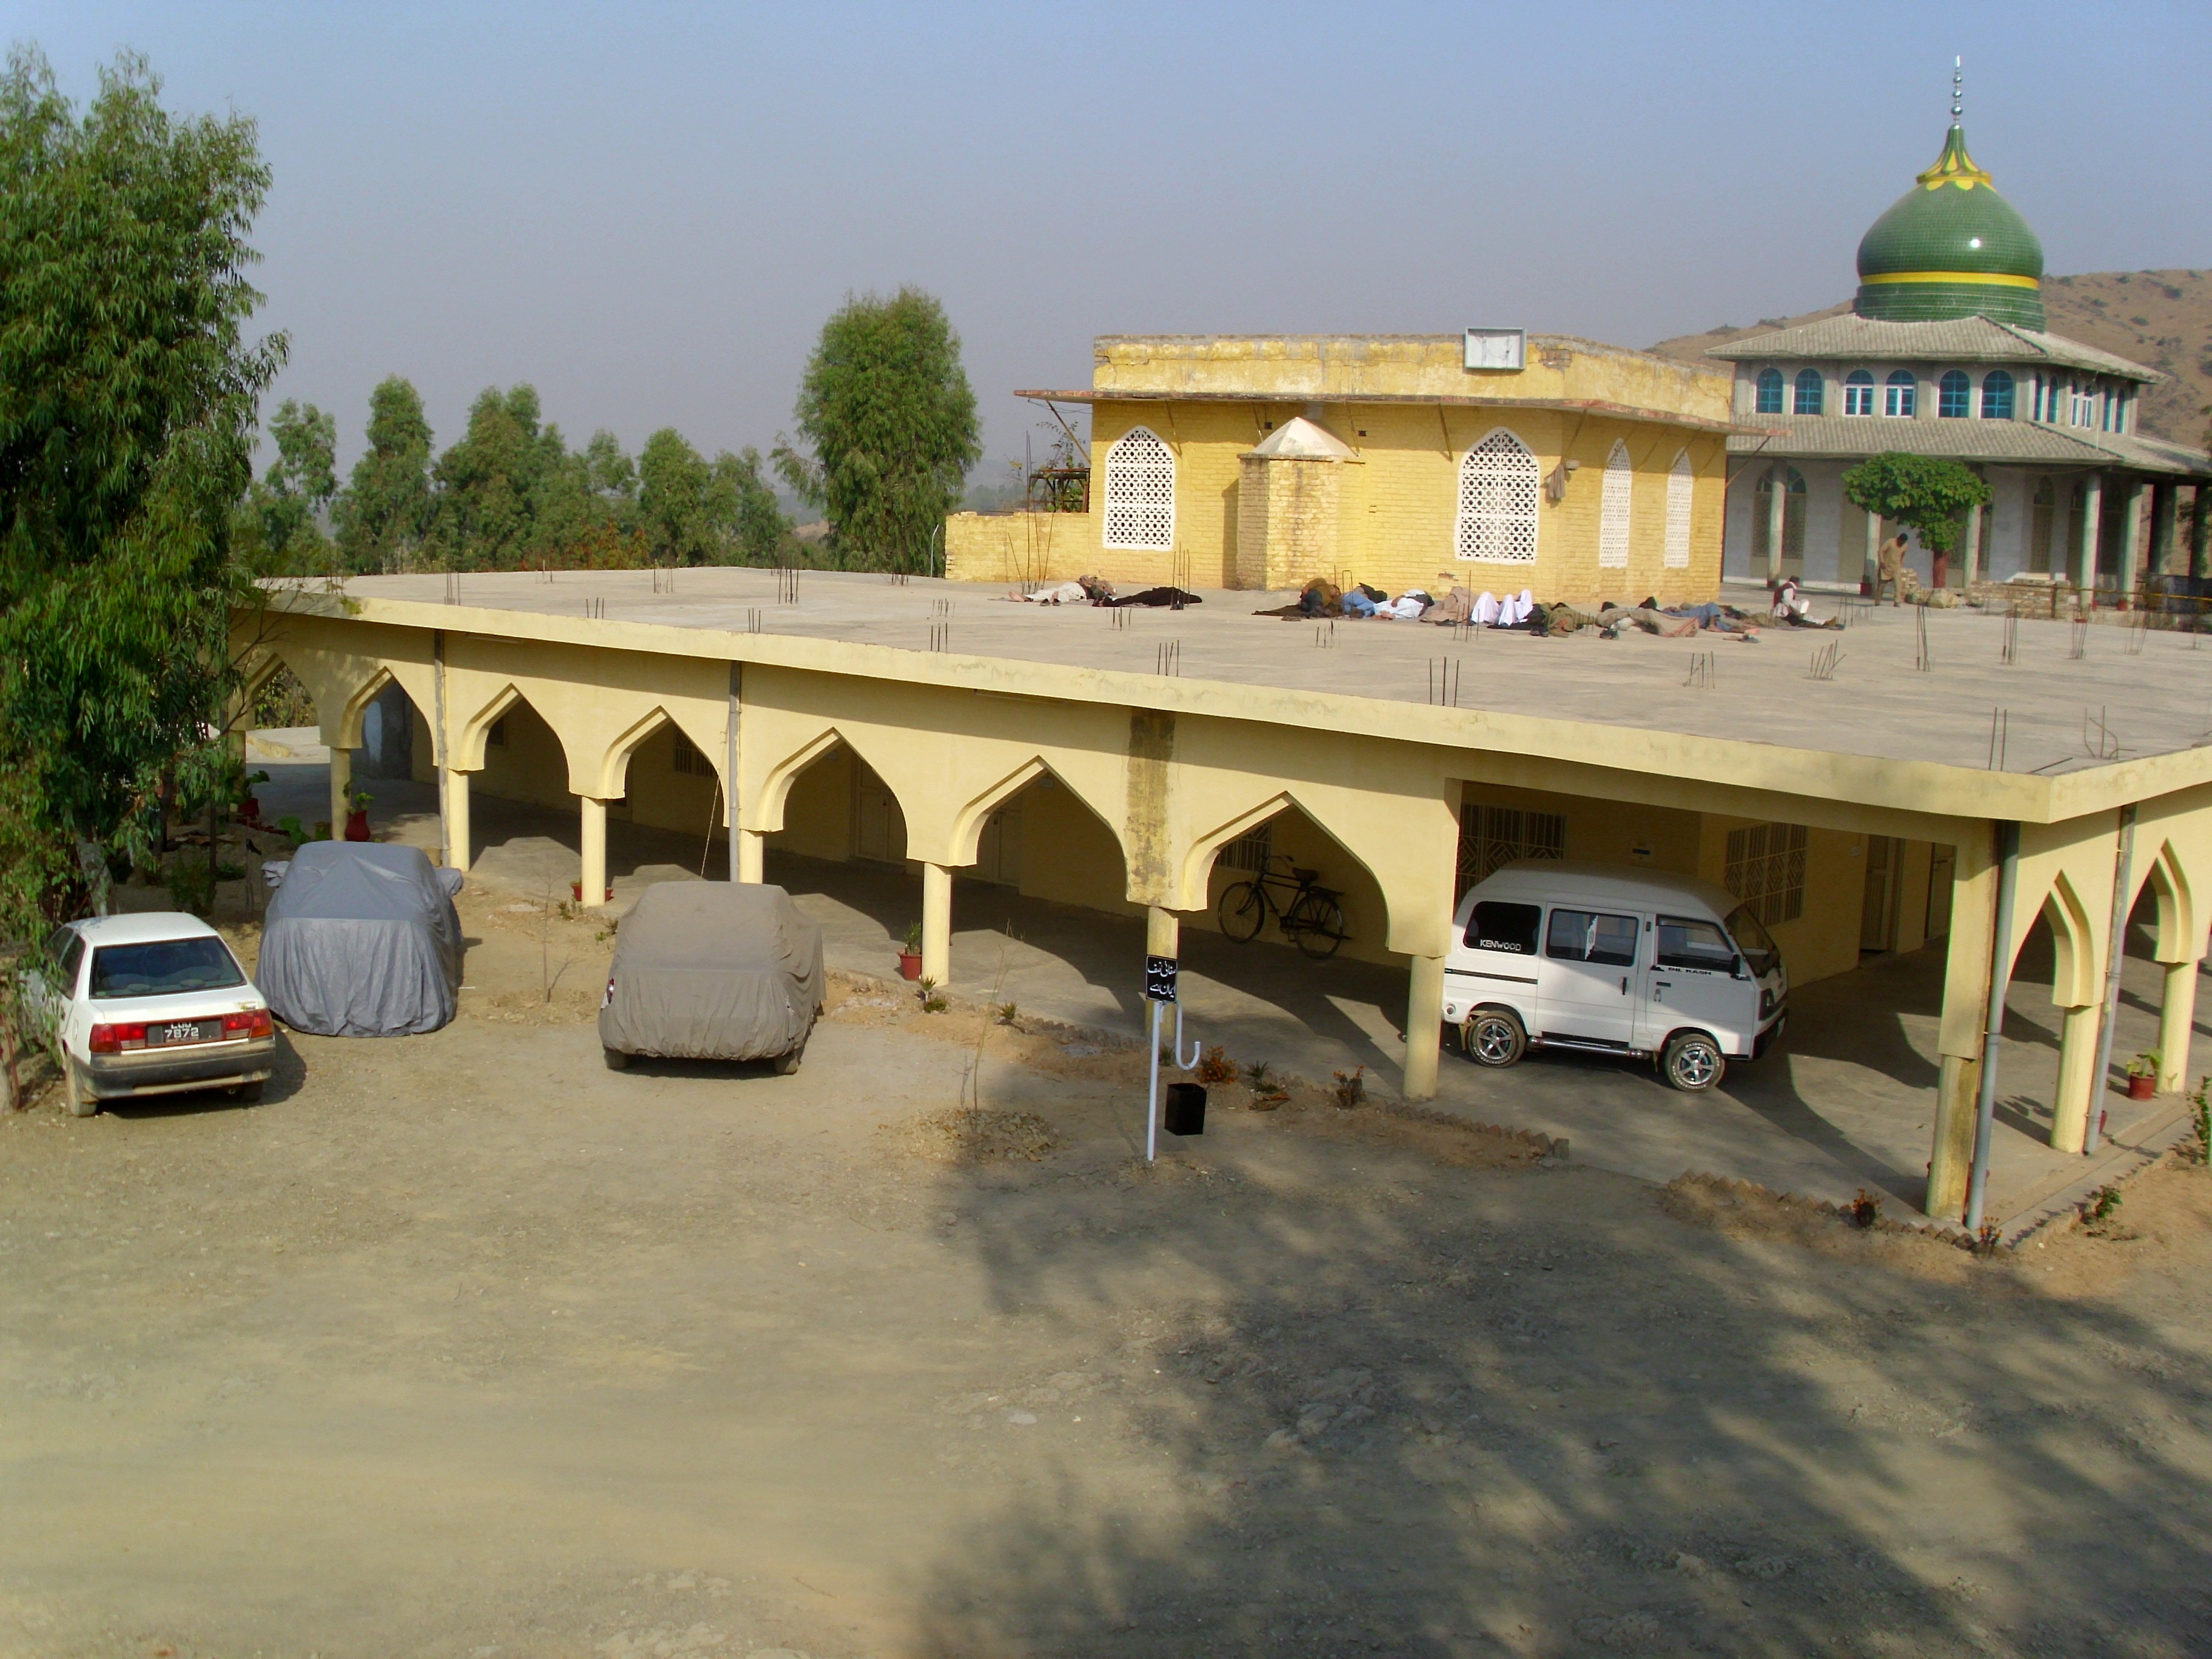 Pics In Haripur Dua 23Dec2010